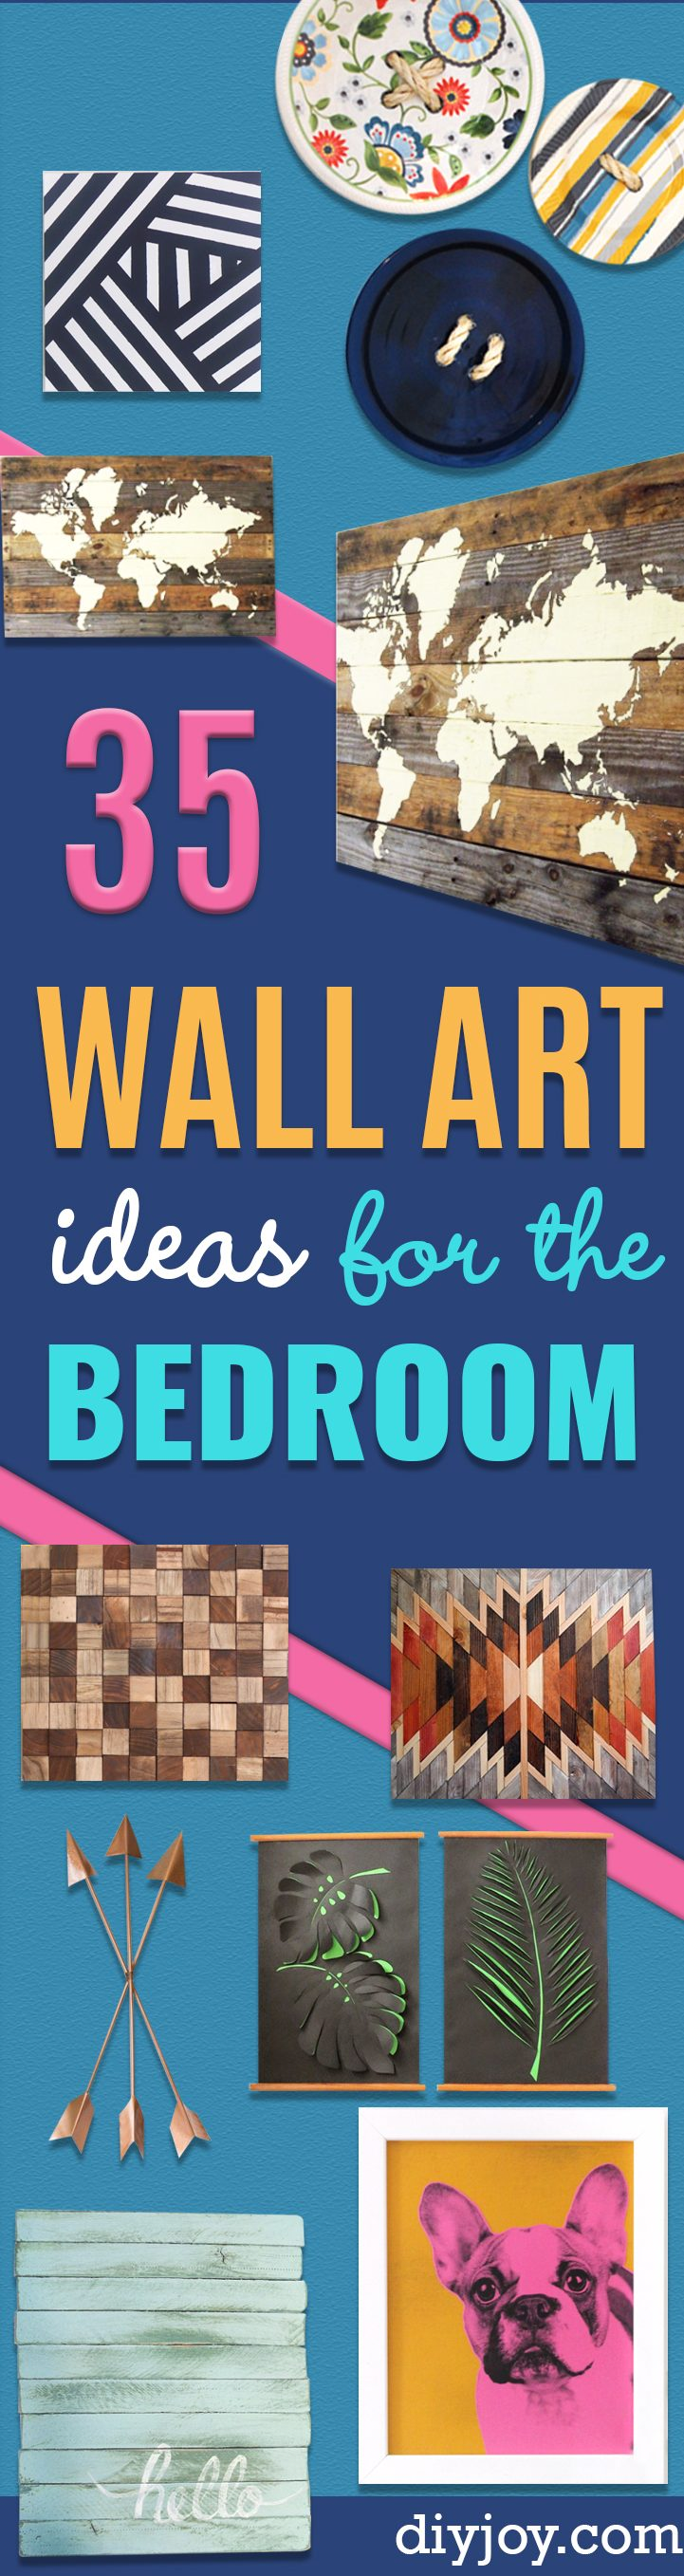 35 DIY Wall Art Ideas for the Bedroom - Rustic Decorating Projects For Bedroom, Brilliant Wall Art Projects, Creative Wall Art, Do It Yourself Crafts, Easy Wall Art, Bedroom Decor on a Budget, Bedroom - Easy Canvas Art Ideas, Painting to Make At Home, Wall Hangings